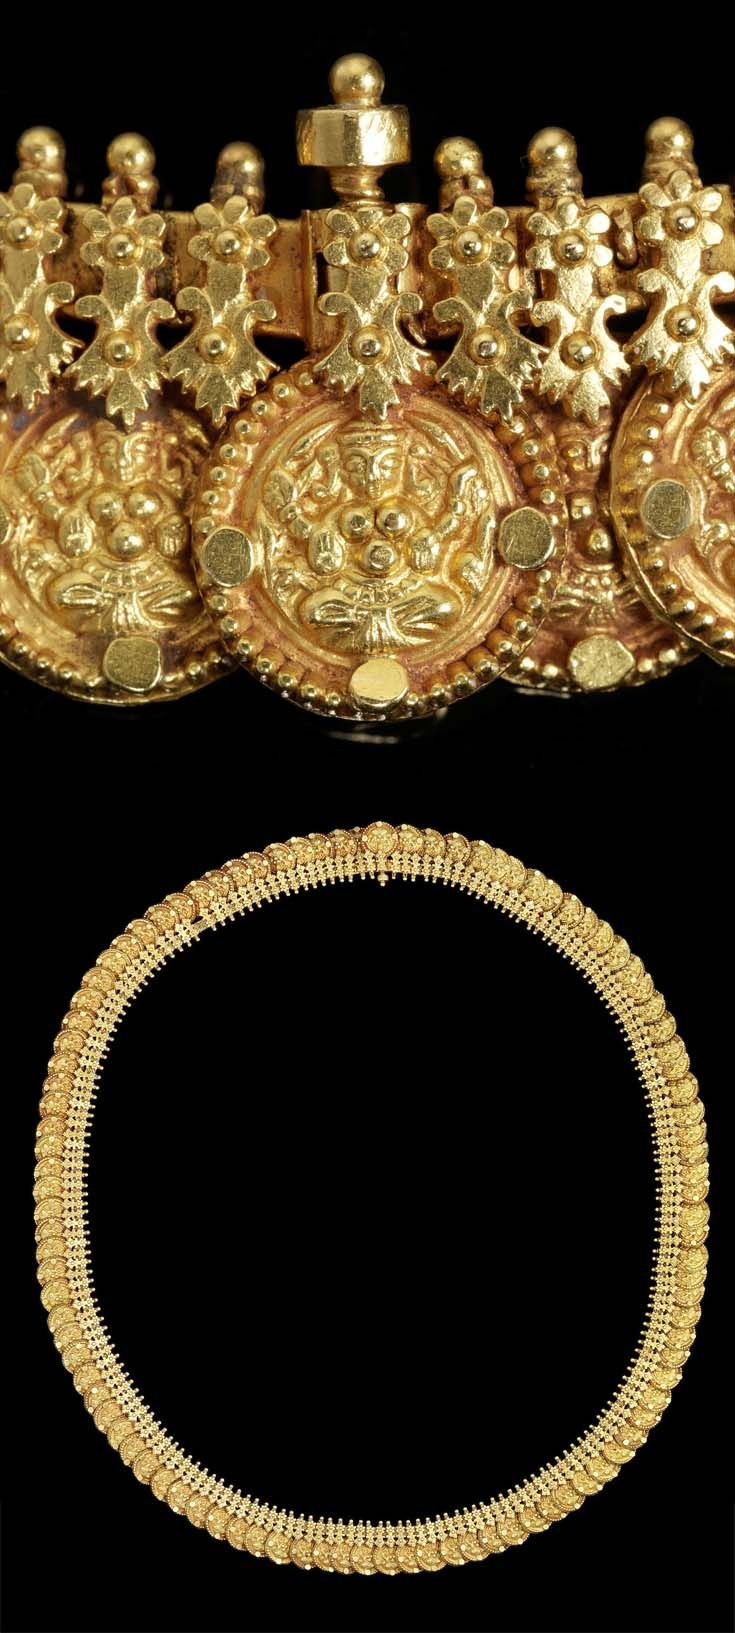 South India - probably Tamil Nadu | Necklace ~ kasumalai ~ composed of one hundred coins, each with repoussé decoration depicting Lakshmi, the goddess of wealth, linked to a gold chain with floral motifs and bud finials | ca. late 19th century | 8'125£ ~ sold (Oct '15)